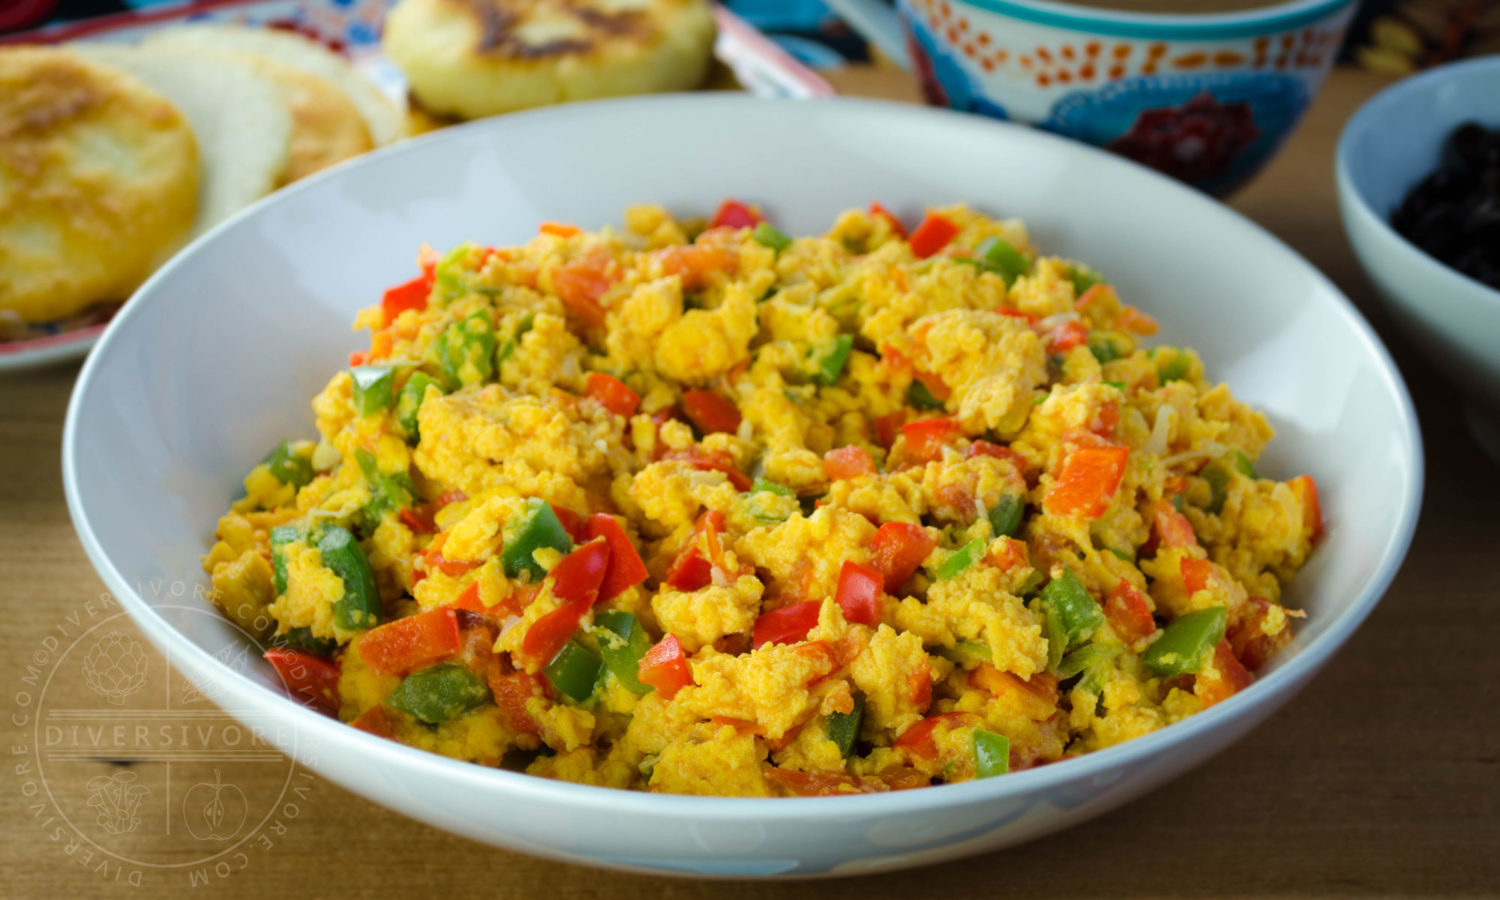 Perico - Colombian/Venezuelan scrambled eggs with peppers, tomatoes, and onions - Diversivore.com